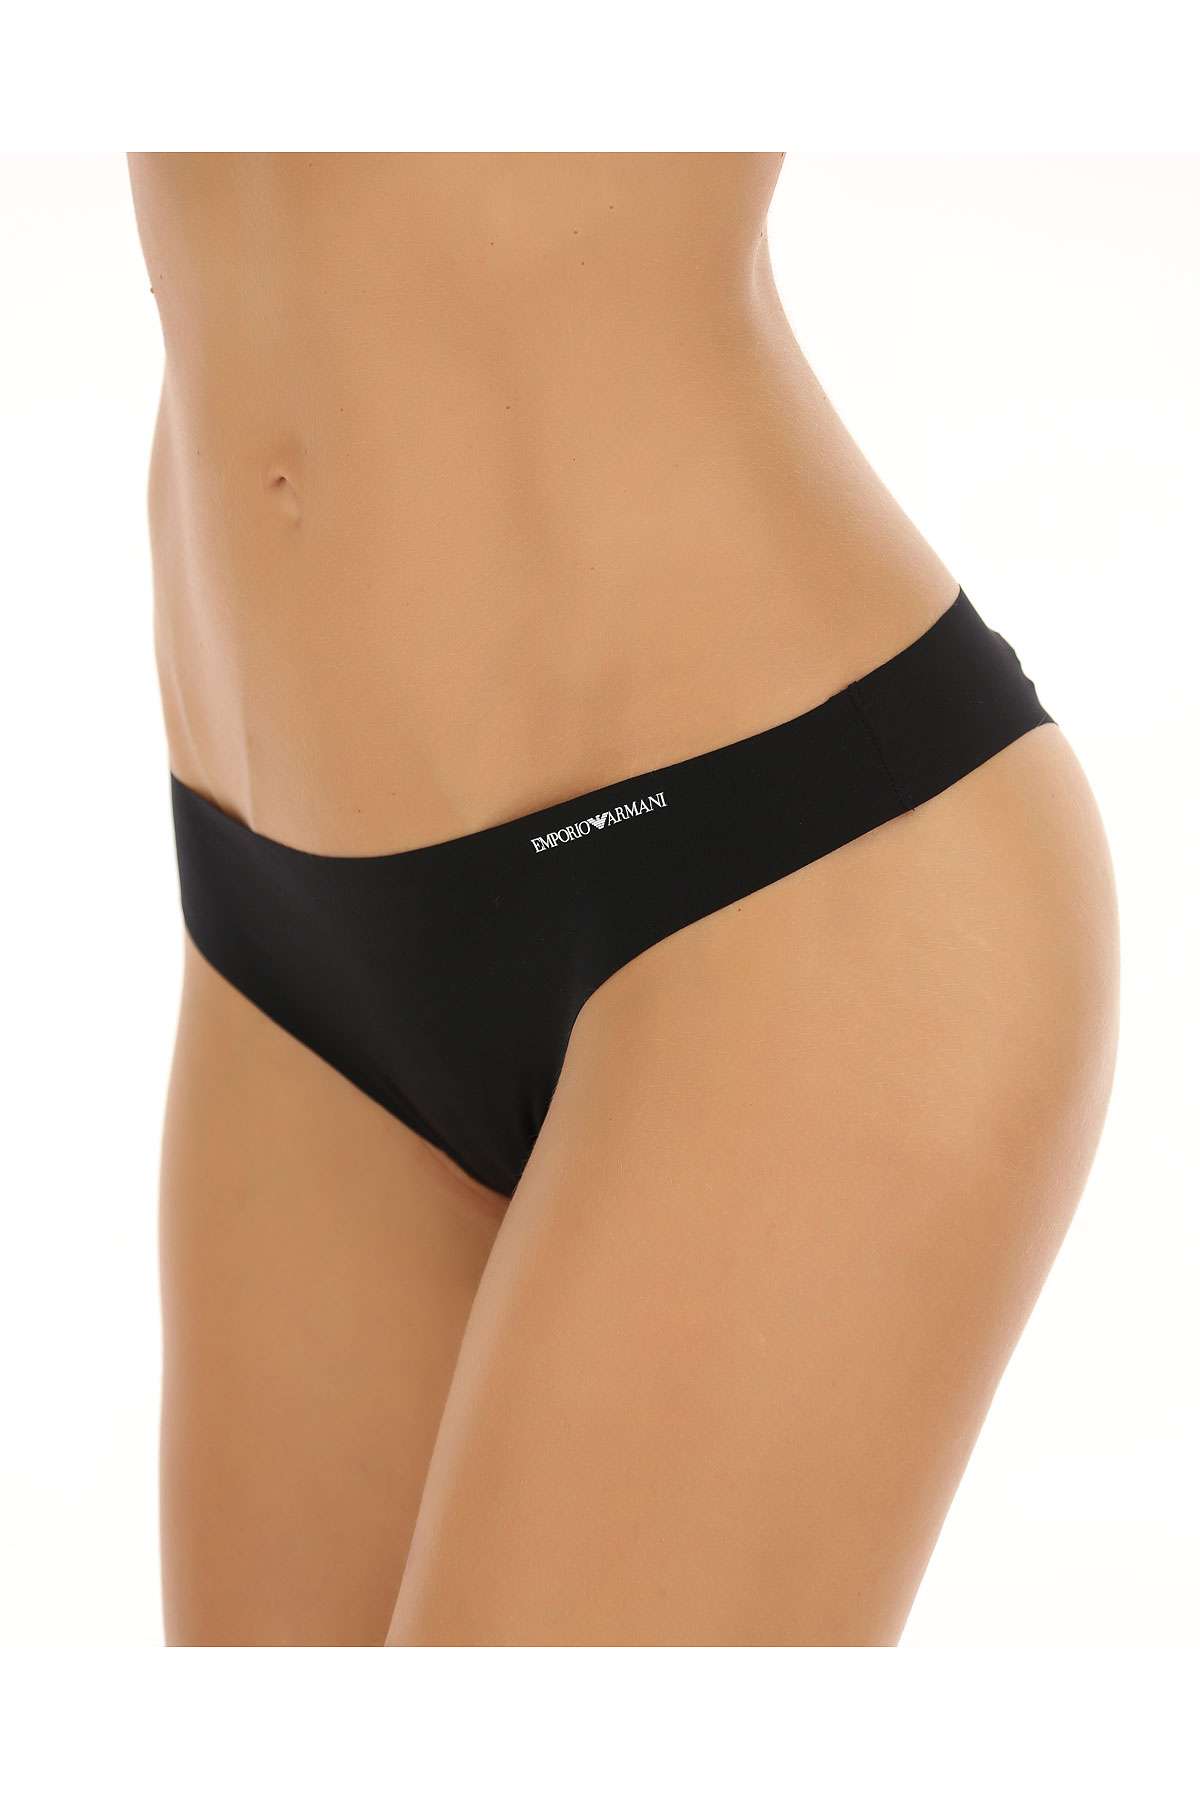 Image of Emporio Armani Womens Underwear On Sale in Outlet, Black, polyamide, 2017, S L